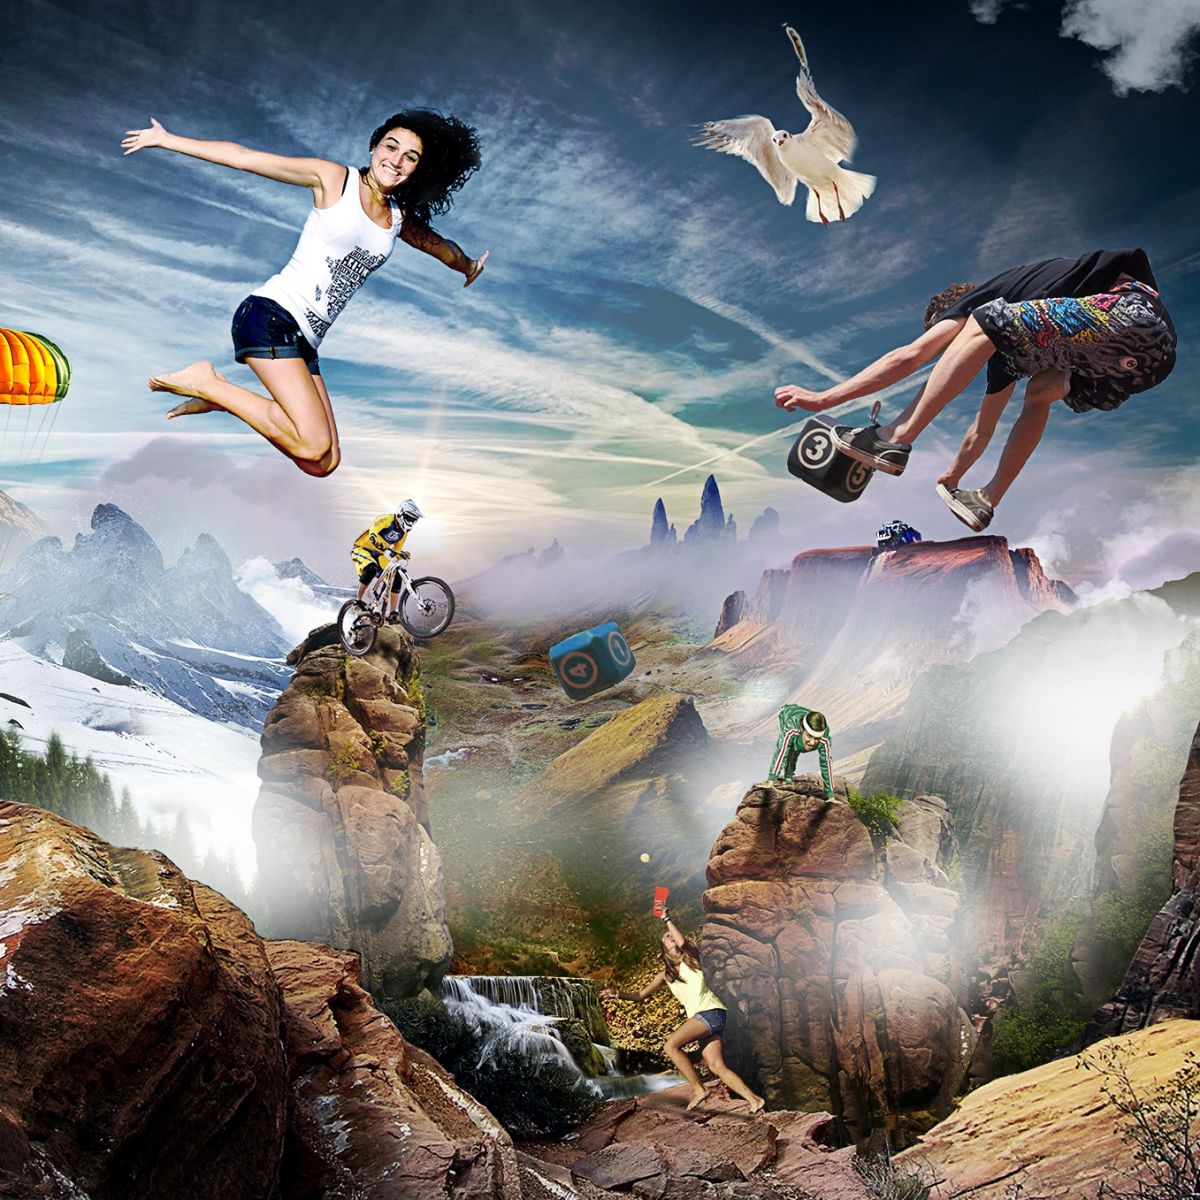 Extreme sports, flying, air, bike, bicycle, woman, fantasy